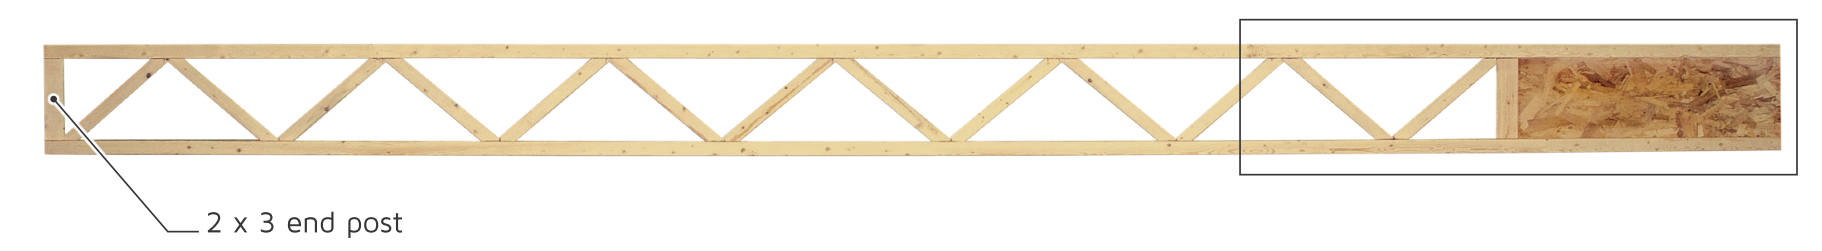 TRIFORCE Open Wen Joist is perfect for fire resistant open web ceilings